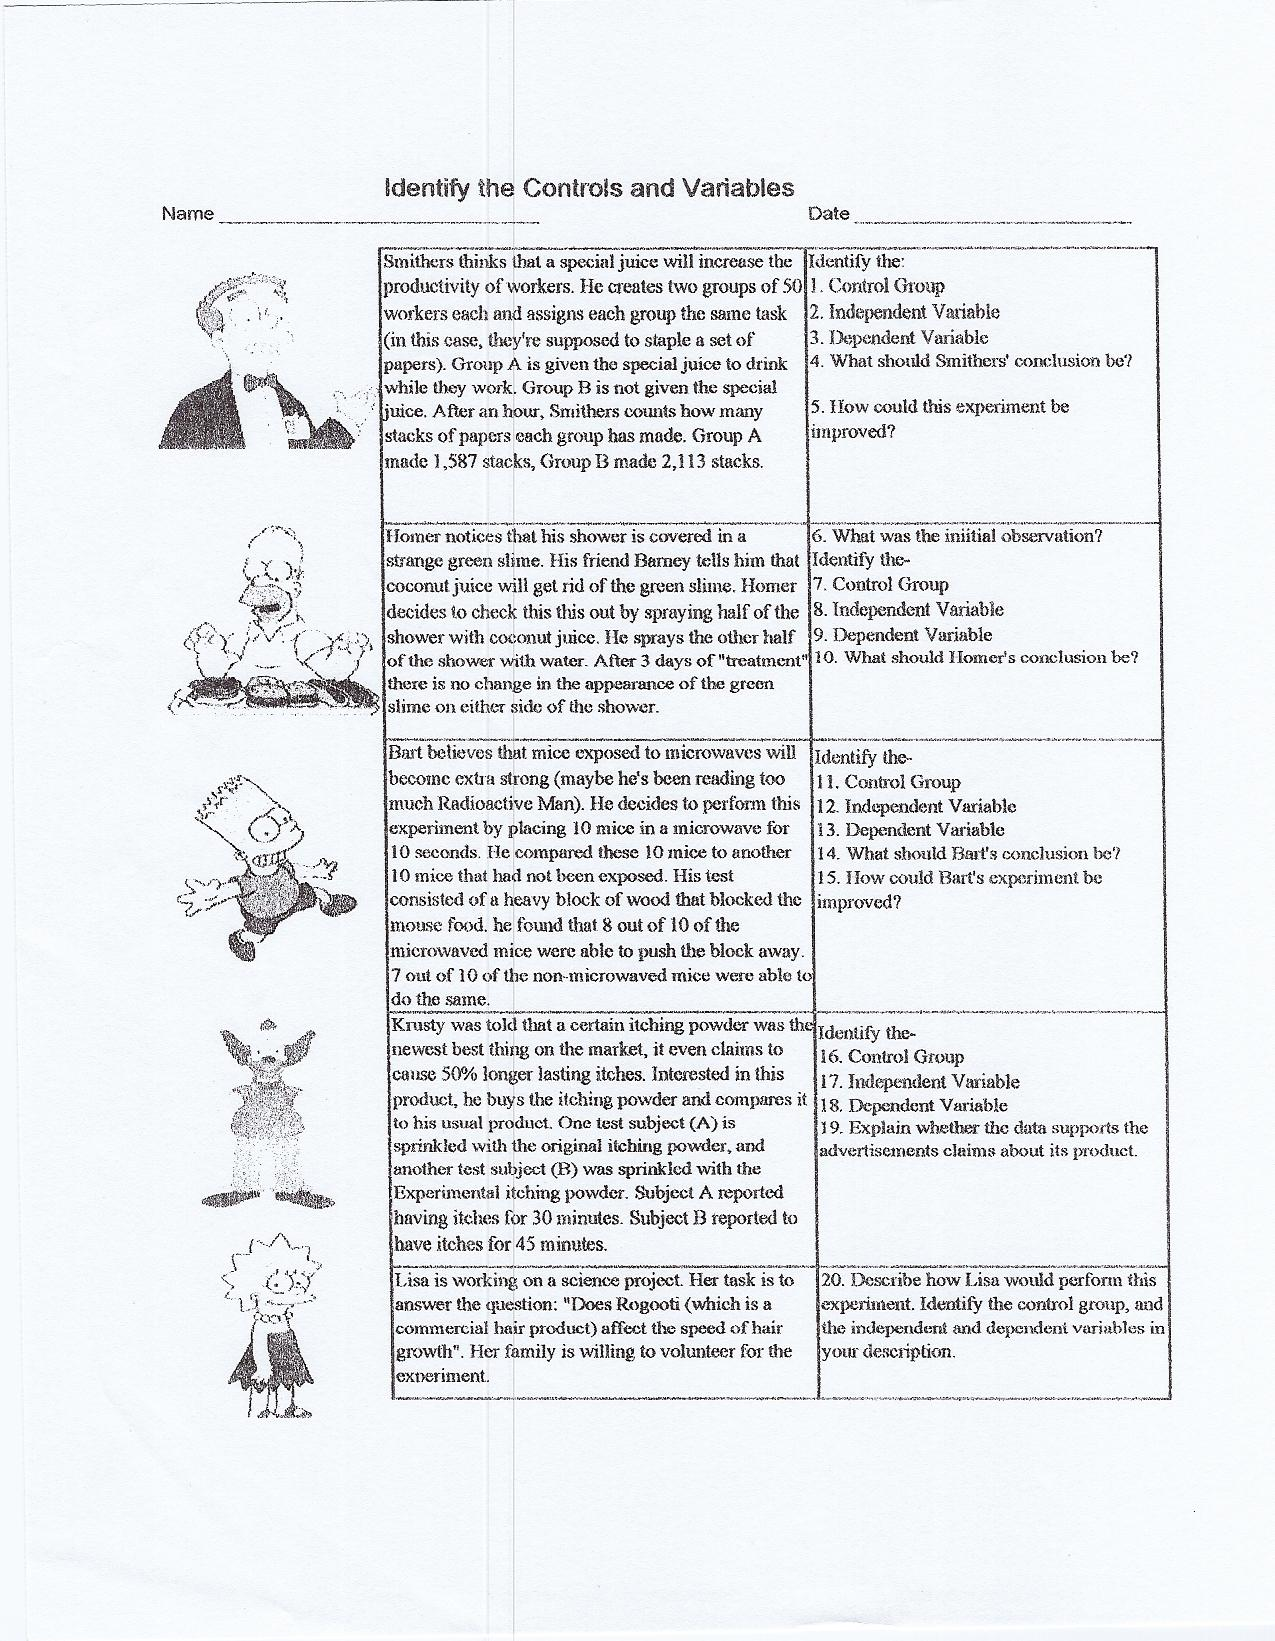 Simpson Scientific Method Worksheet Free Worksheets Library – Simpsons Scientific Method Worksheet